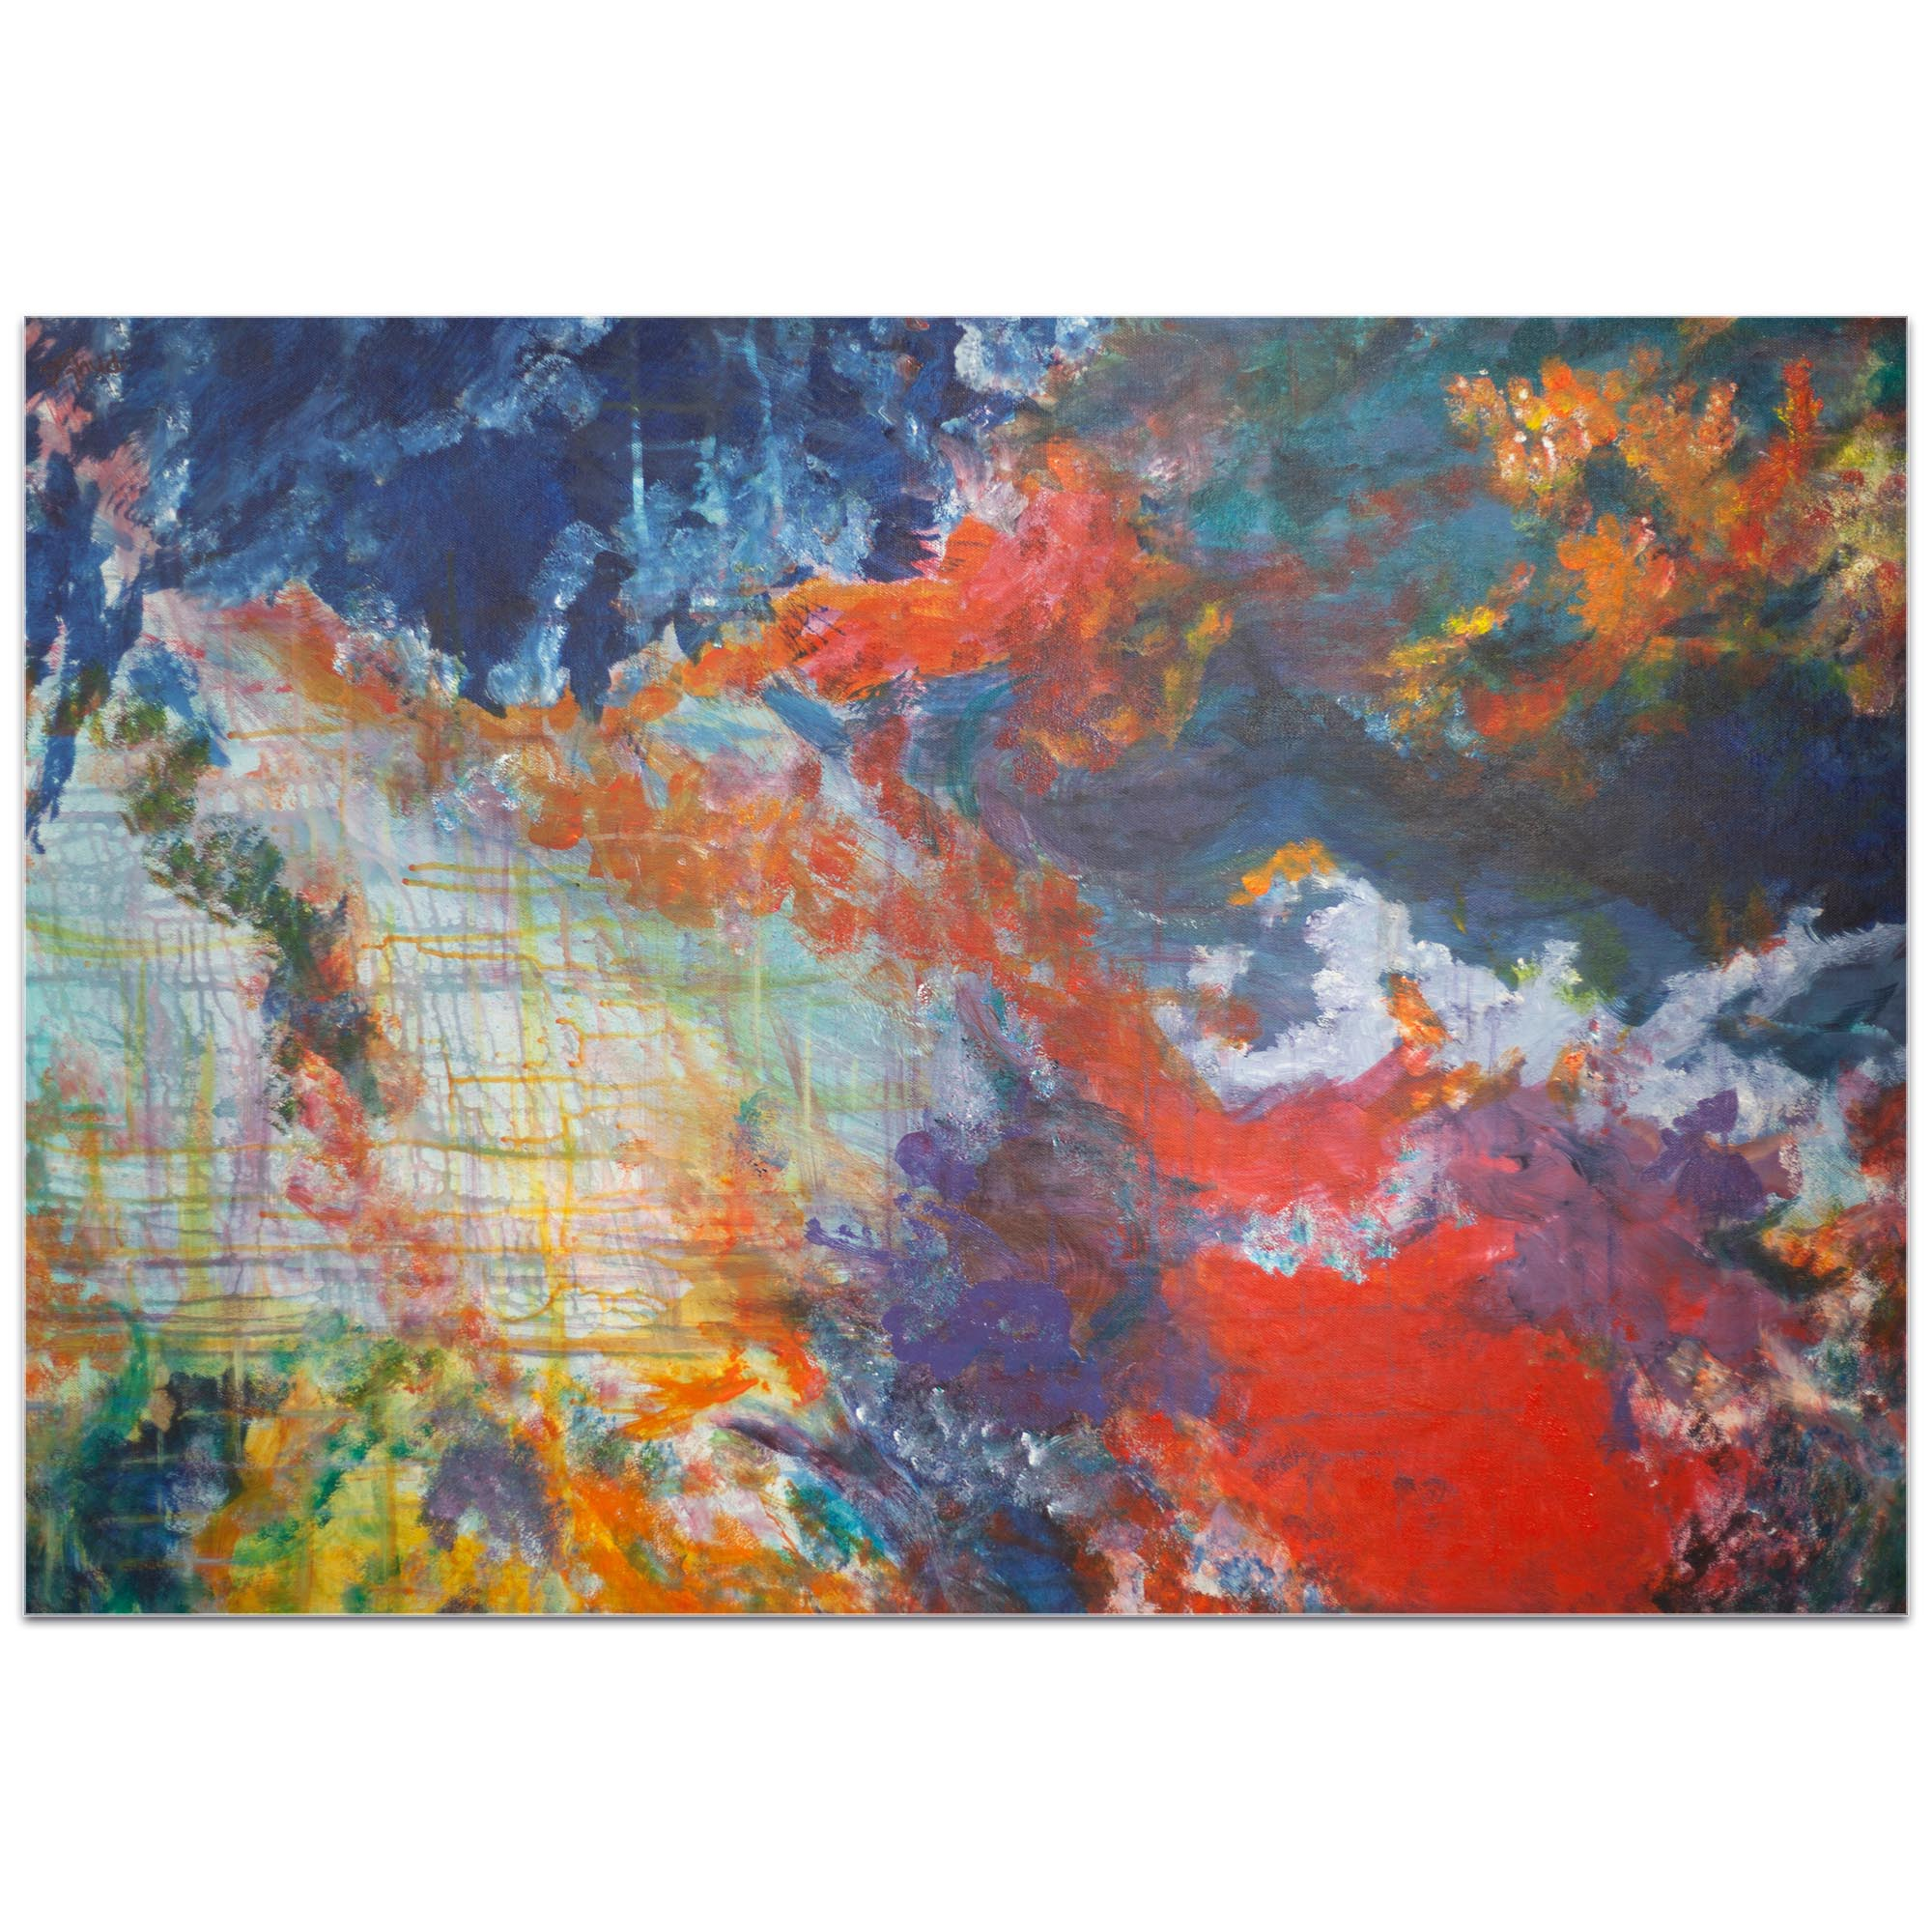 Abstract Wall Art 'Clouds of Color' - Urban Decor on Metal or Plexiglass - Image 2